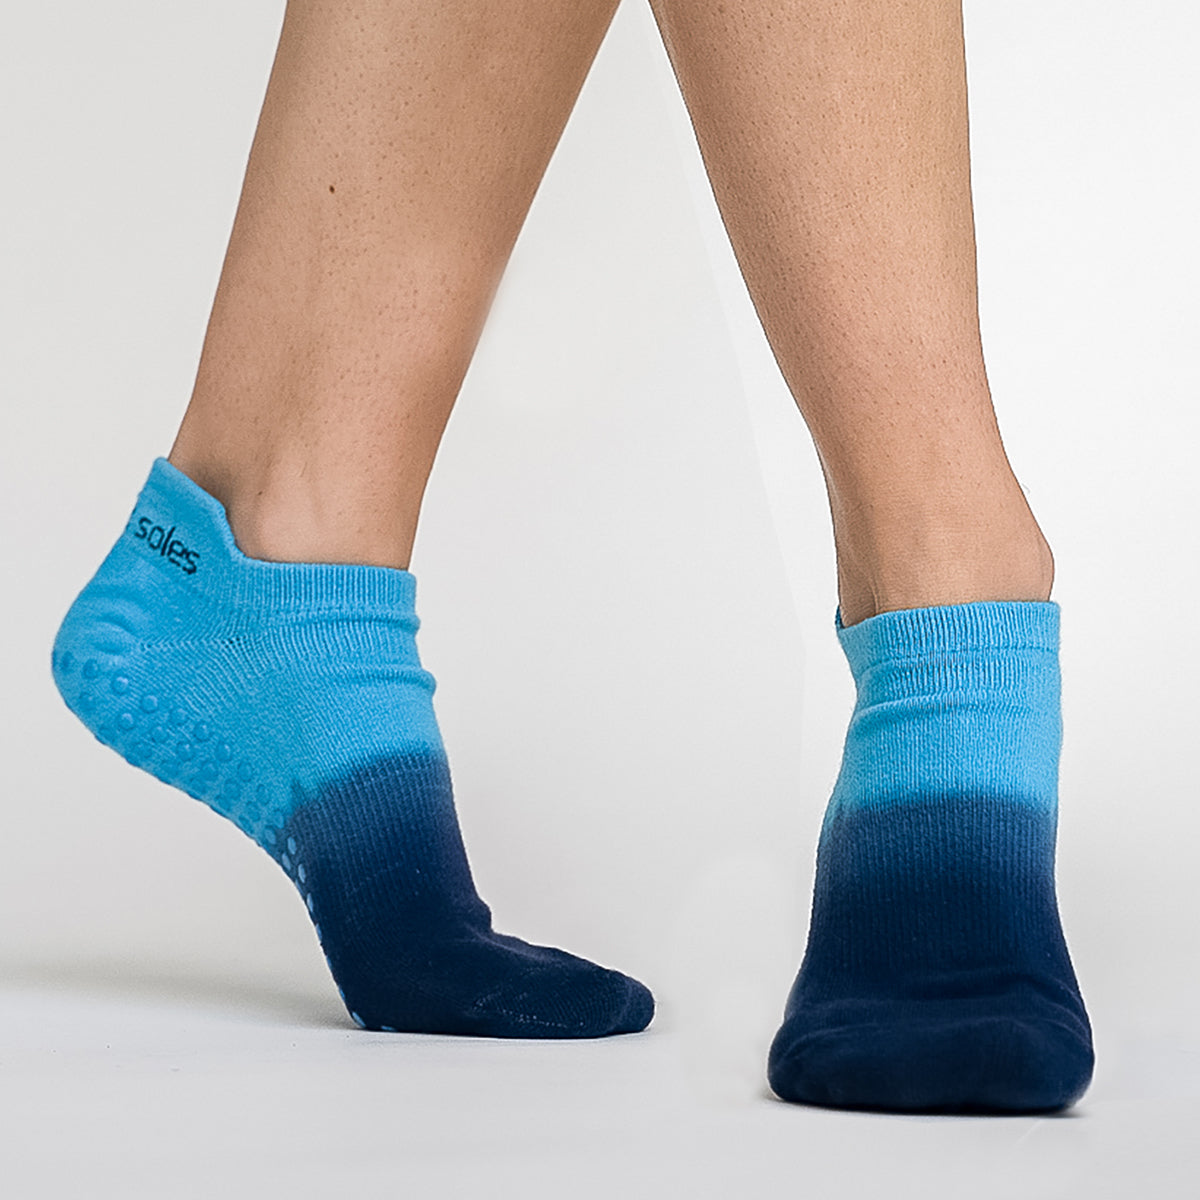 Ombre dyed nonslip  grip sock  for Pilates, Barre, Yoga and home